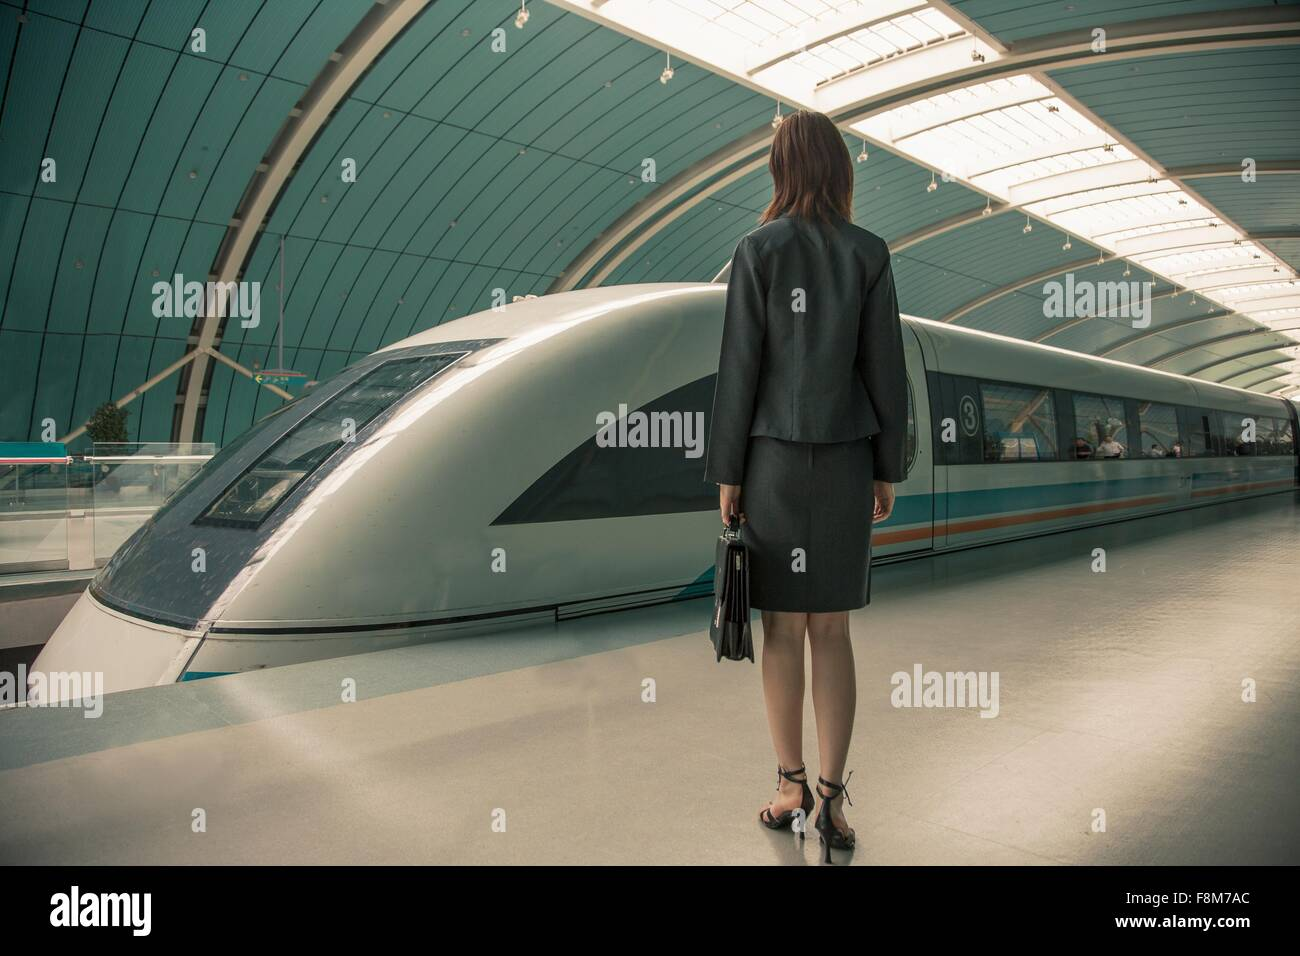 Femme d'affaires en attente d'un train sur un quai de gare, Shanghai, Chine Photo Stock